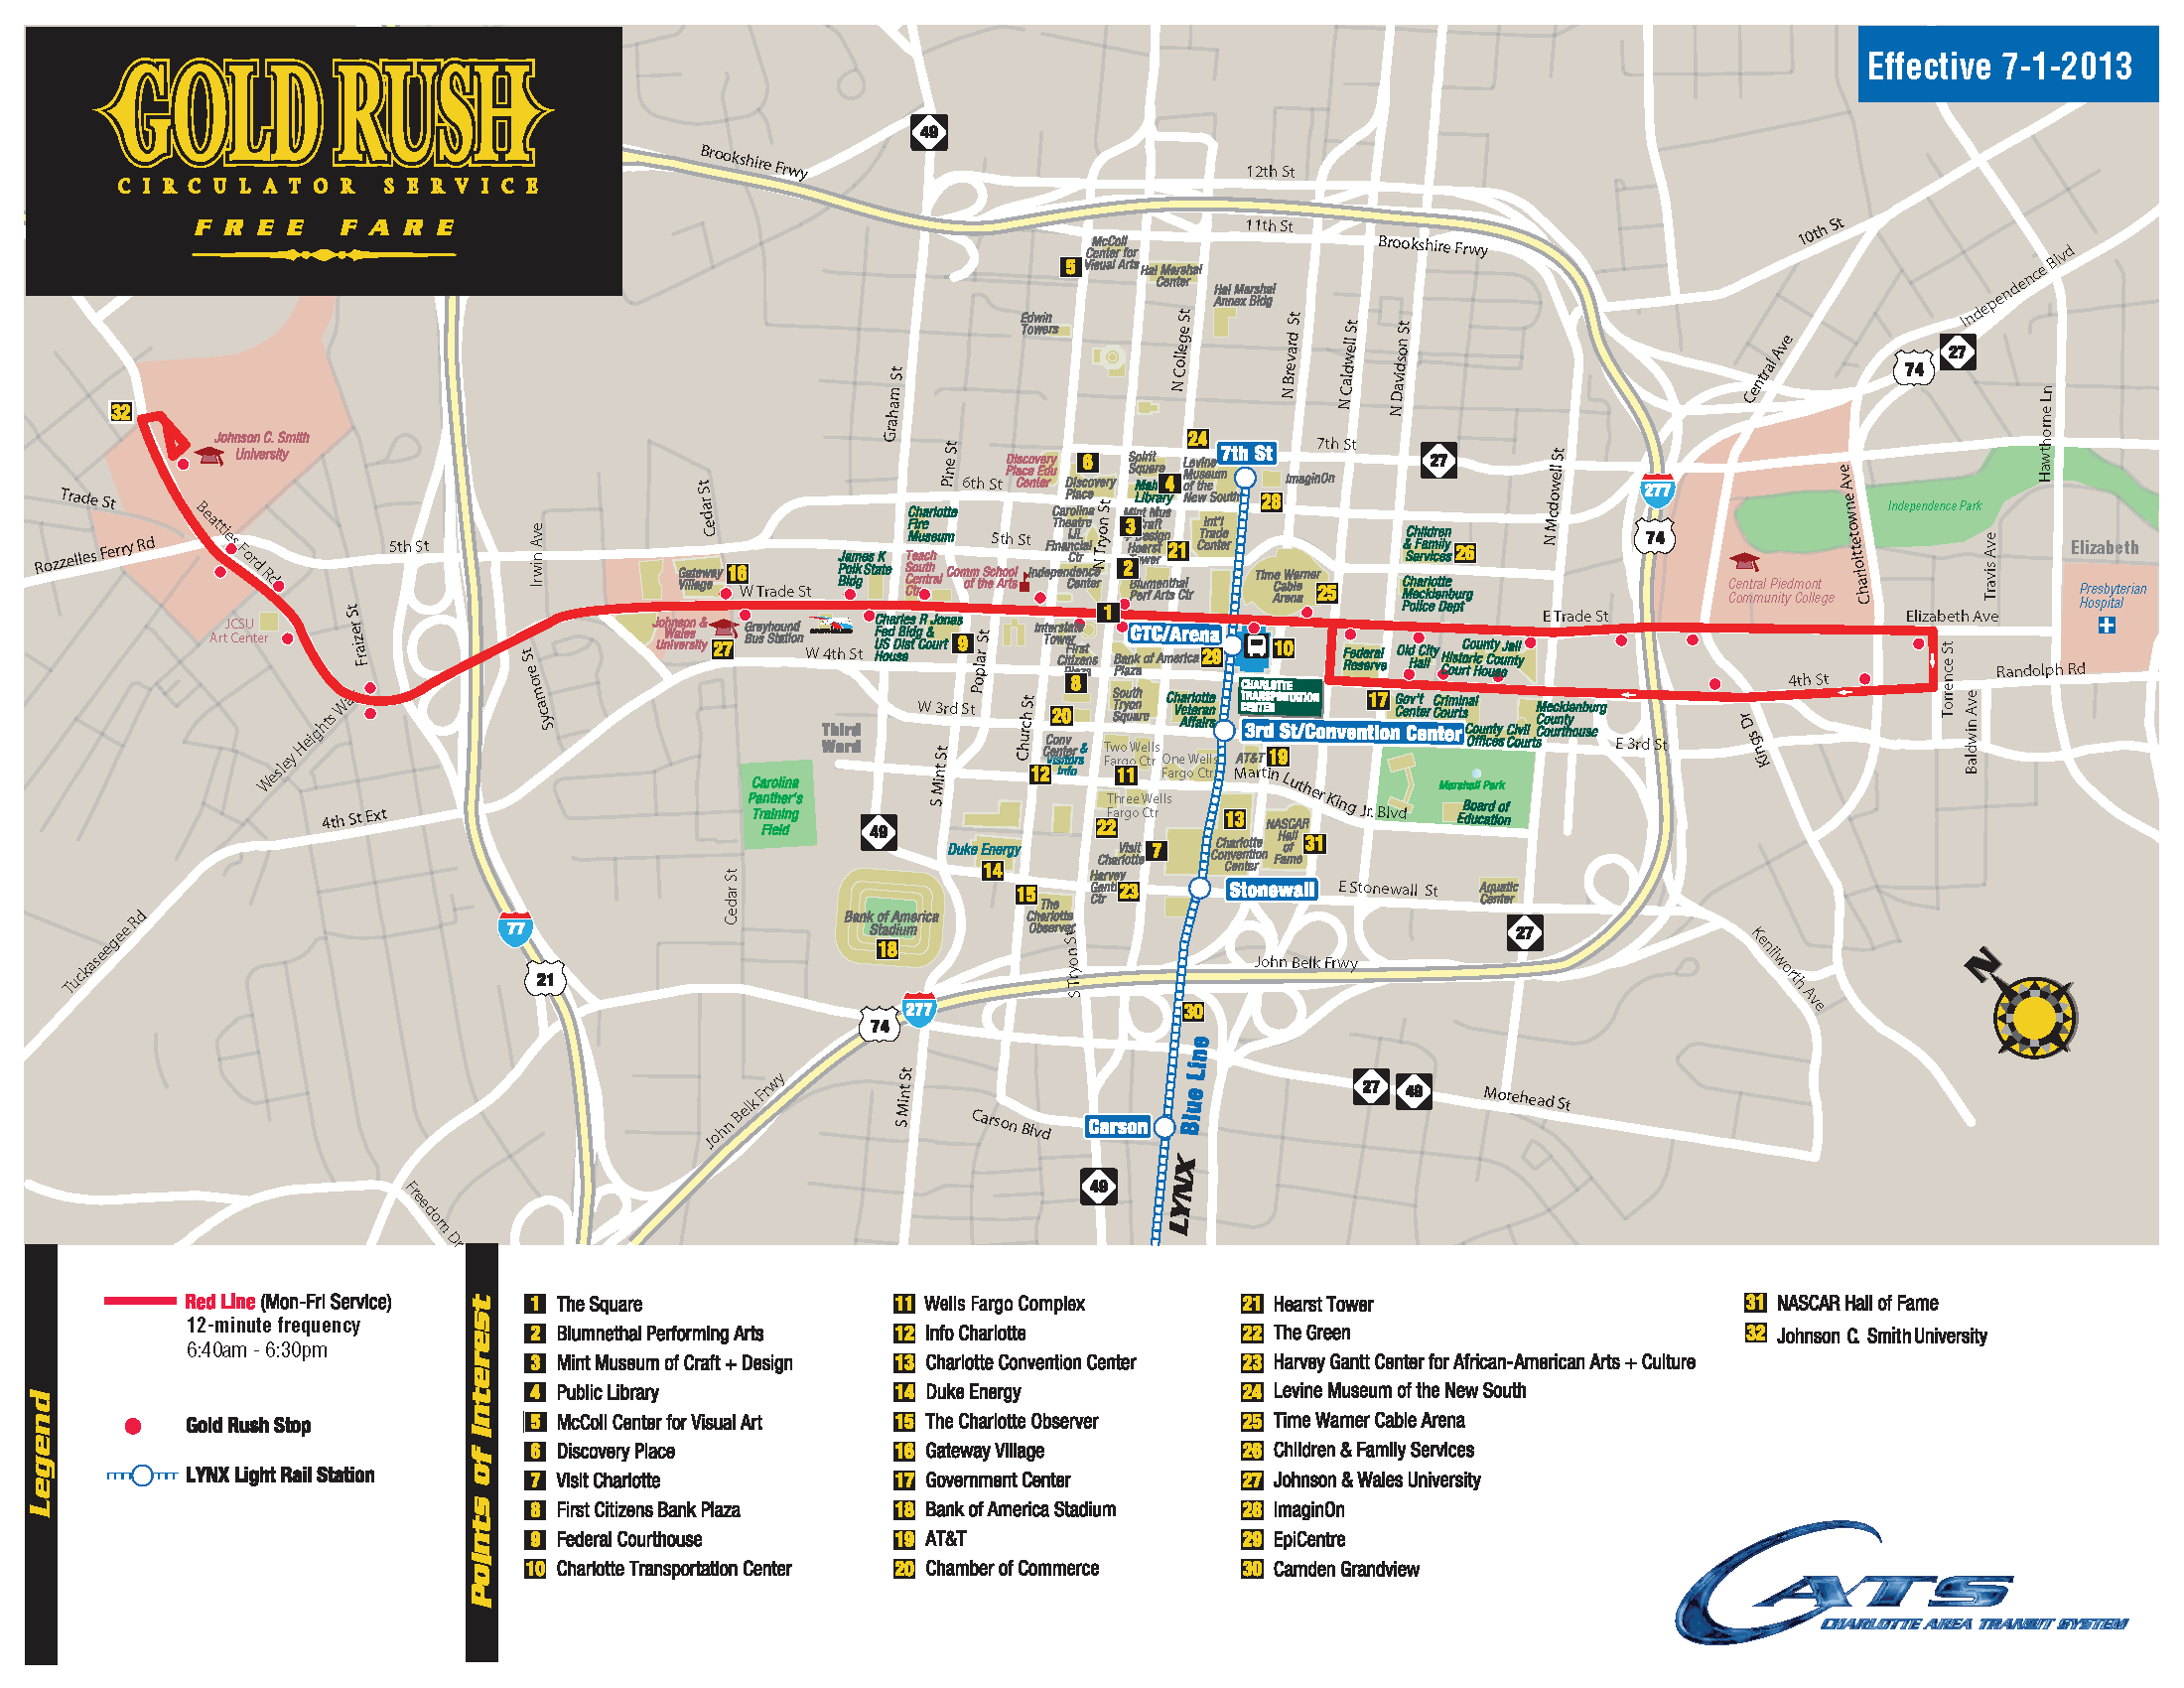 The Gold Rush - FREE TROLLEY SERVICE for UPTOWN CHARLOTTE - connect Charlotte Lynx Map on